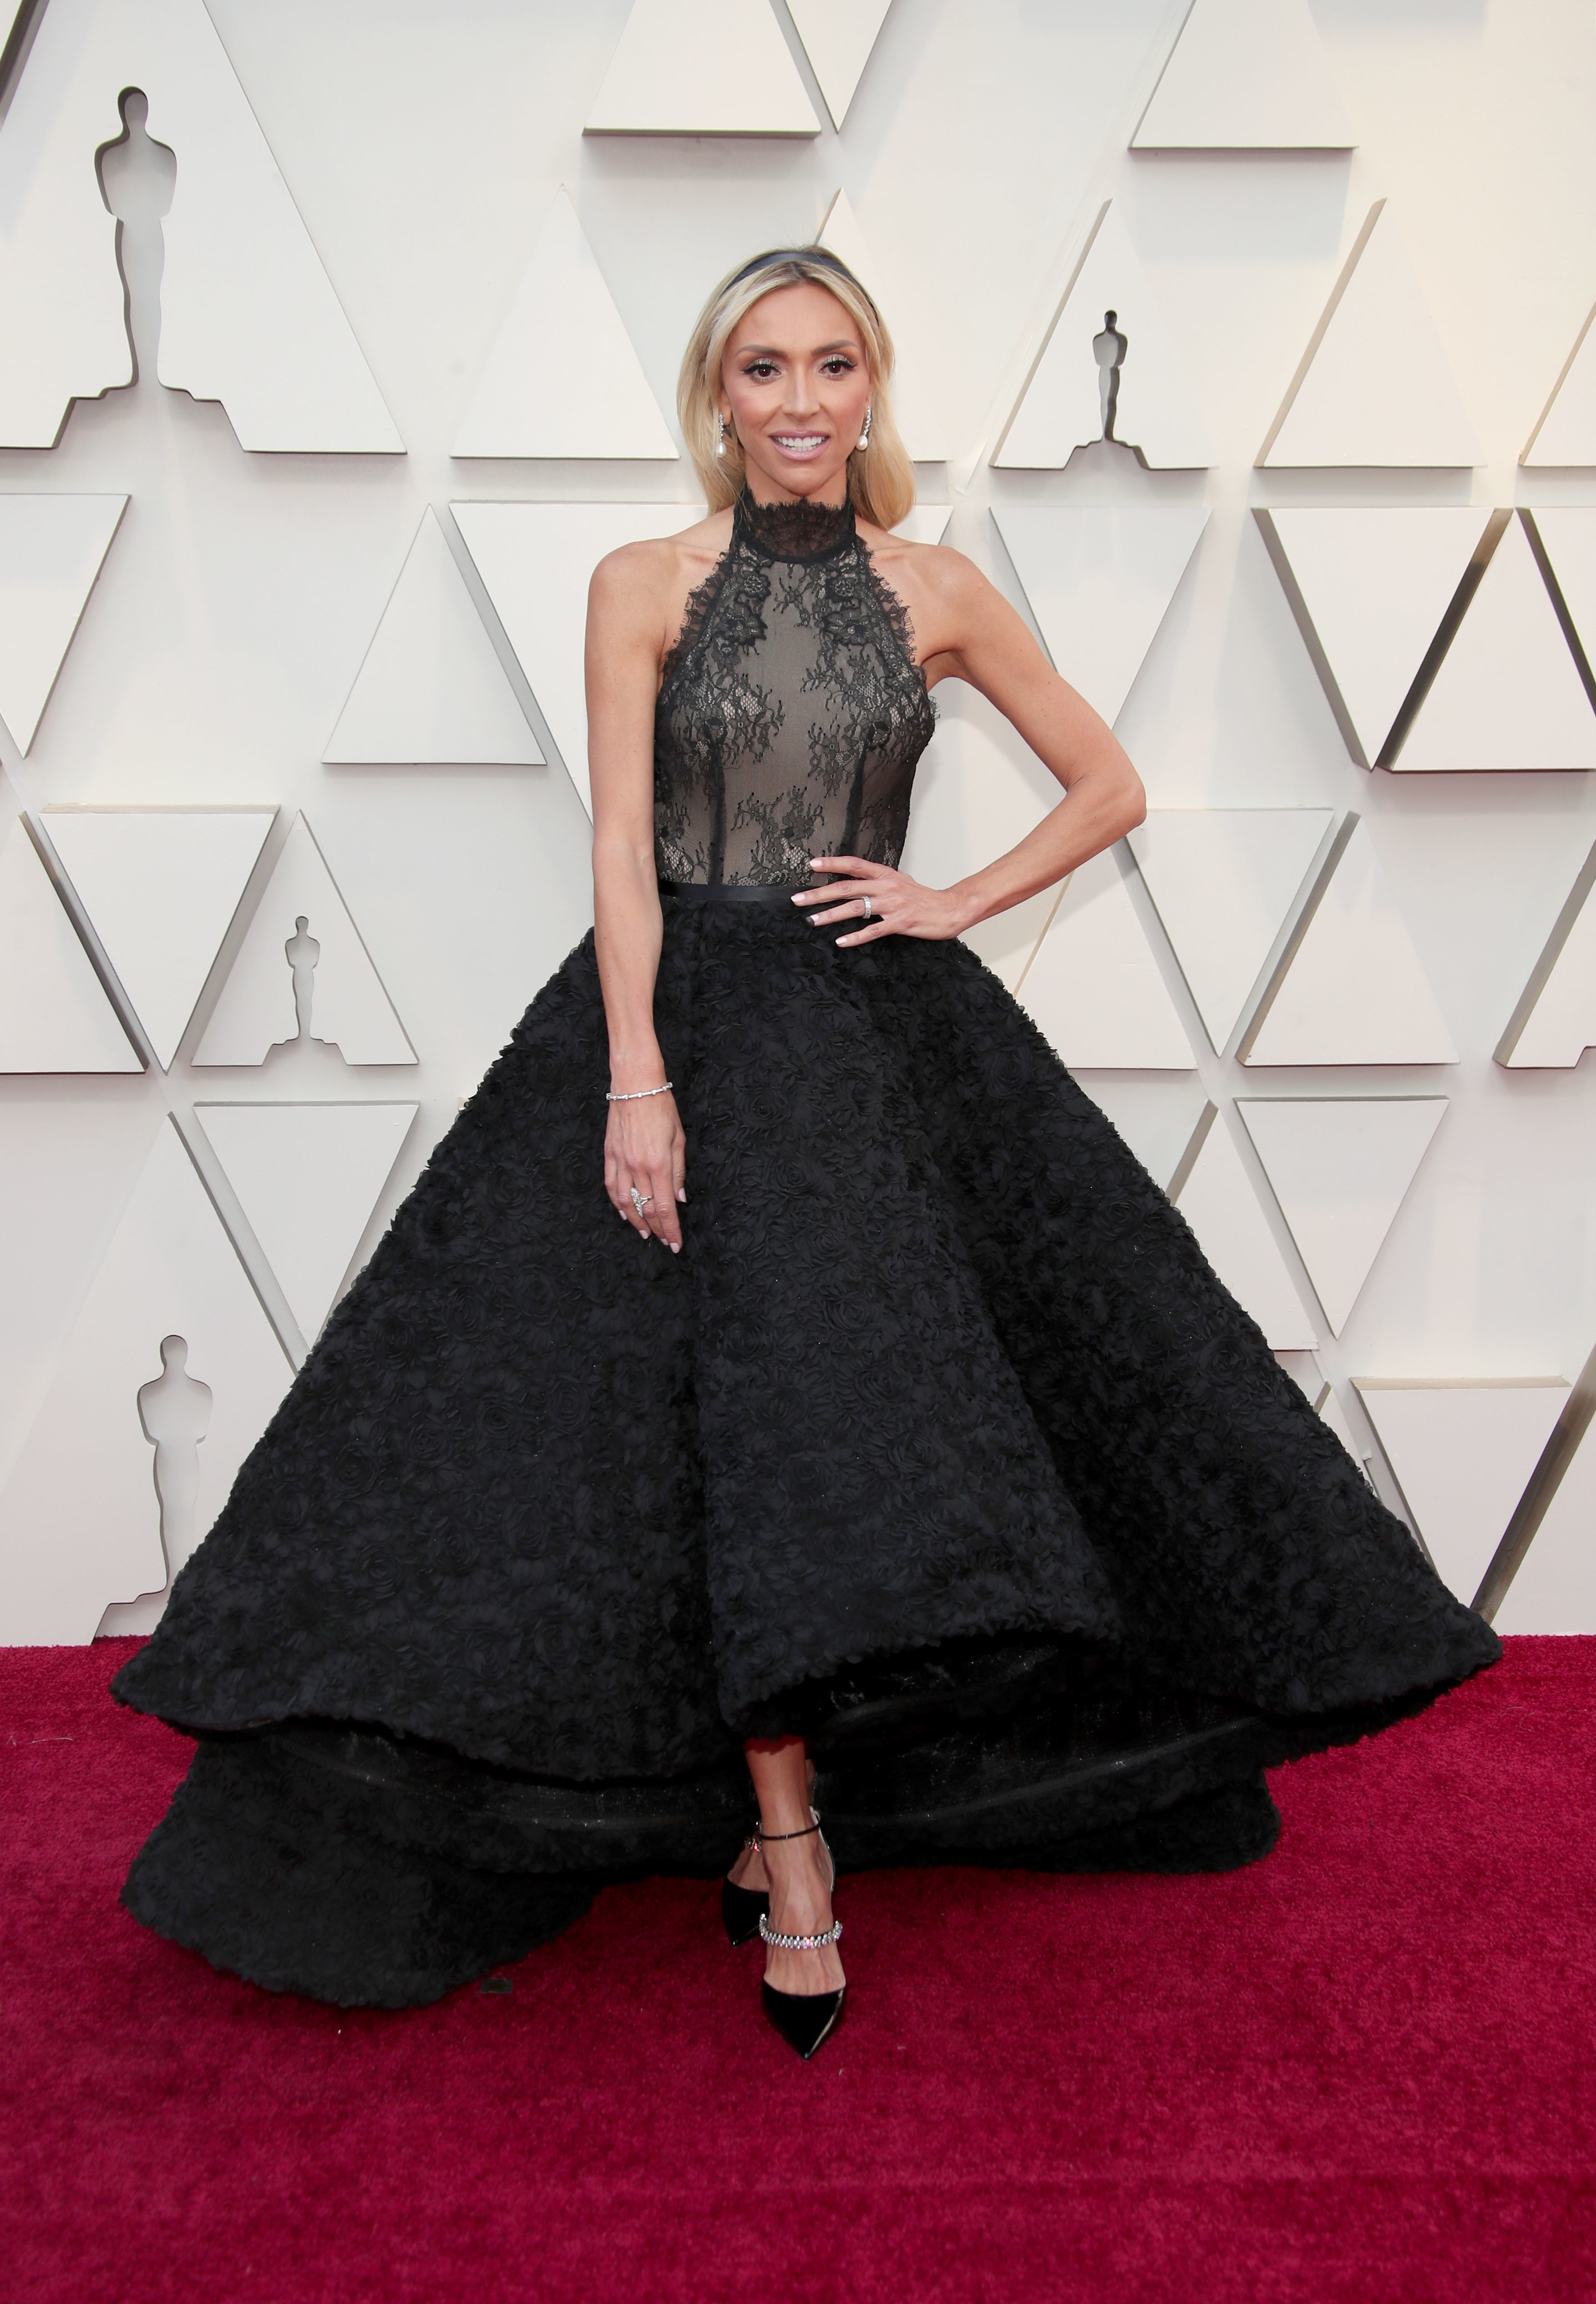 Giuliana Rancic attends the 91st Annual Academy Awards in Los Angeles on Feb. 24, 2019.